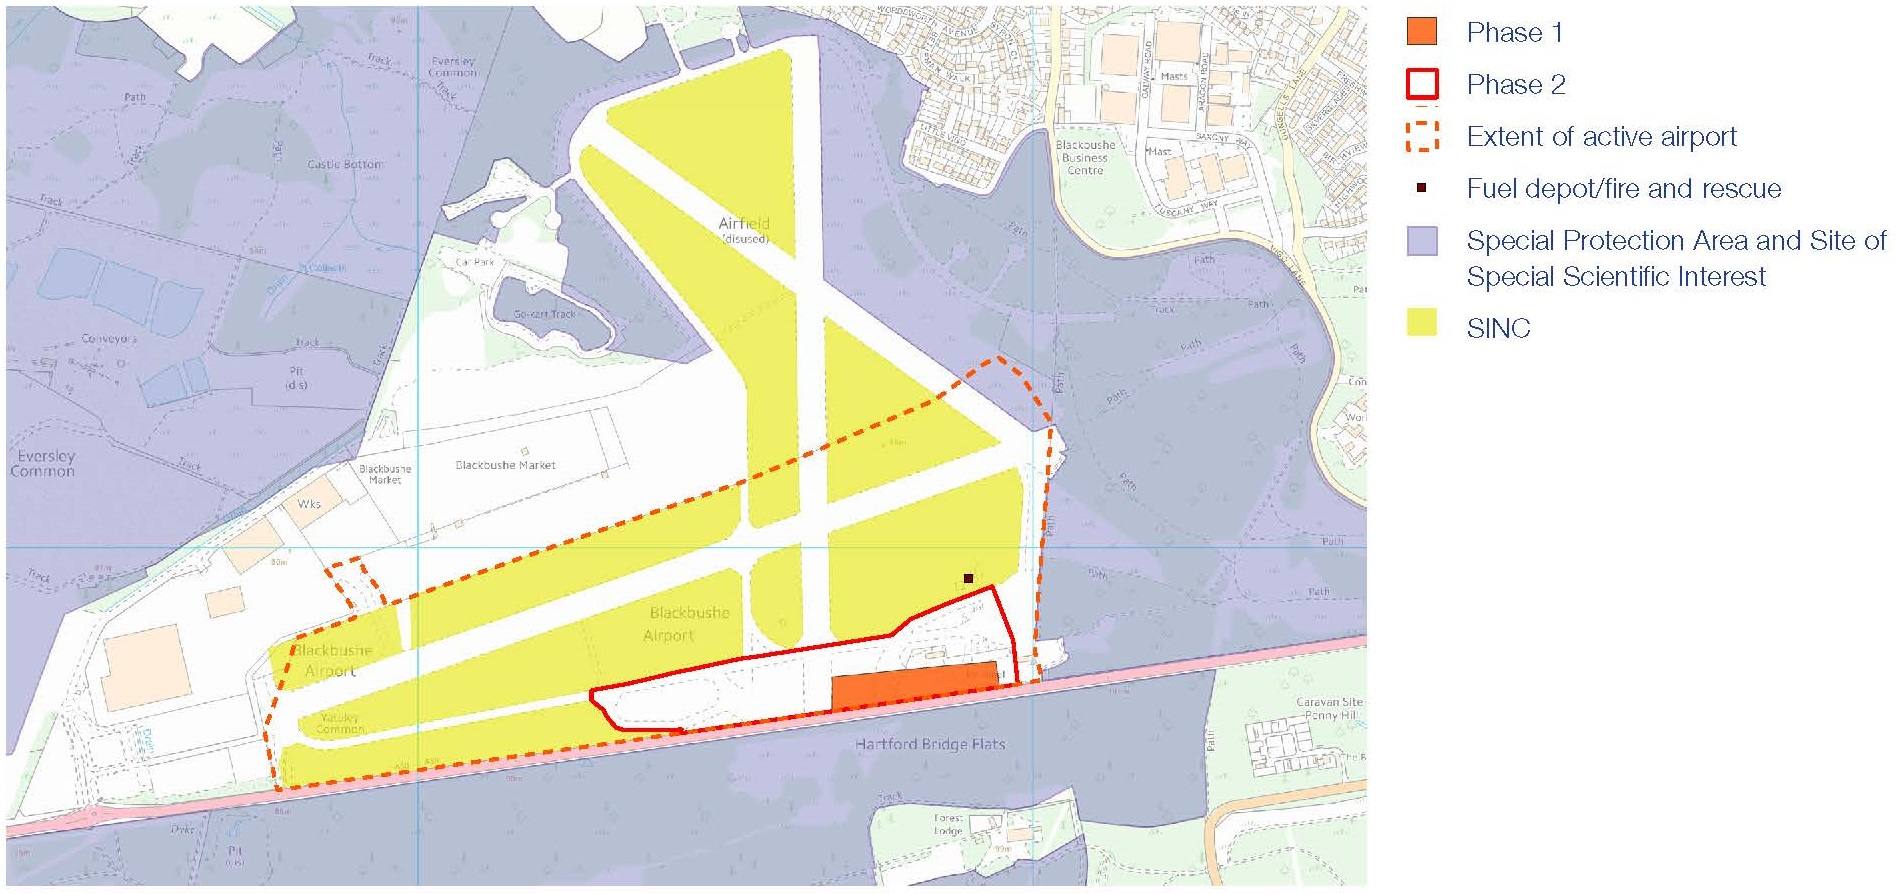 Blackbushe Airport Site Plan